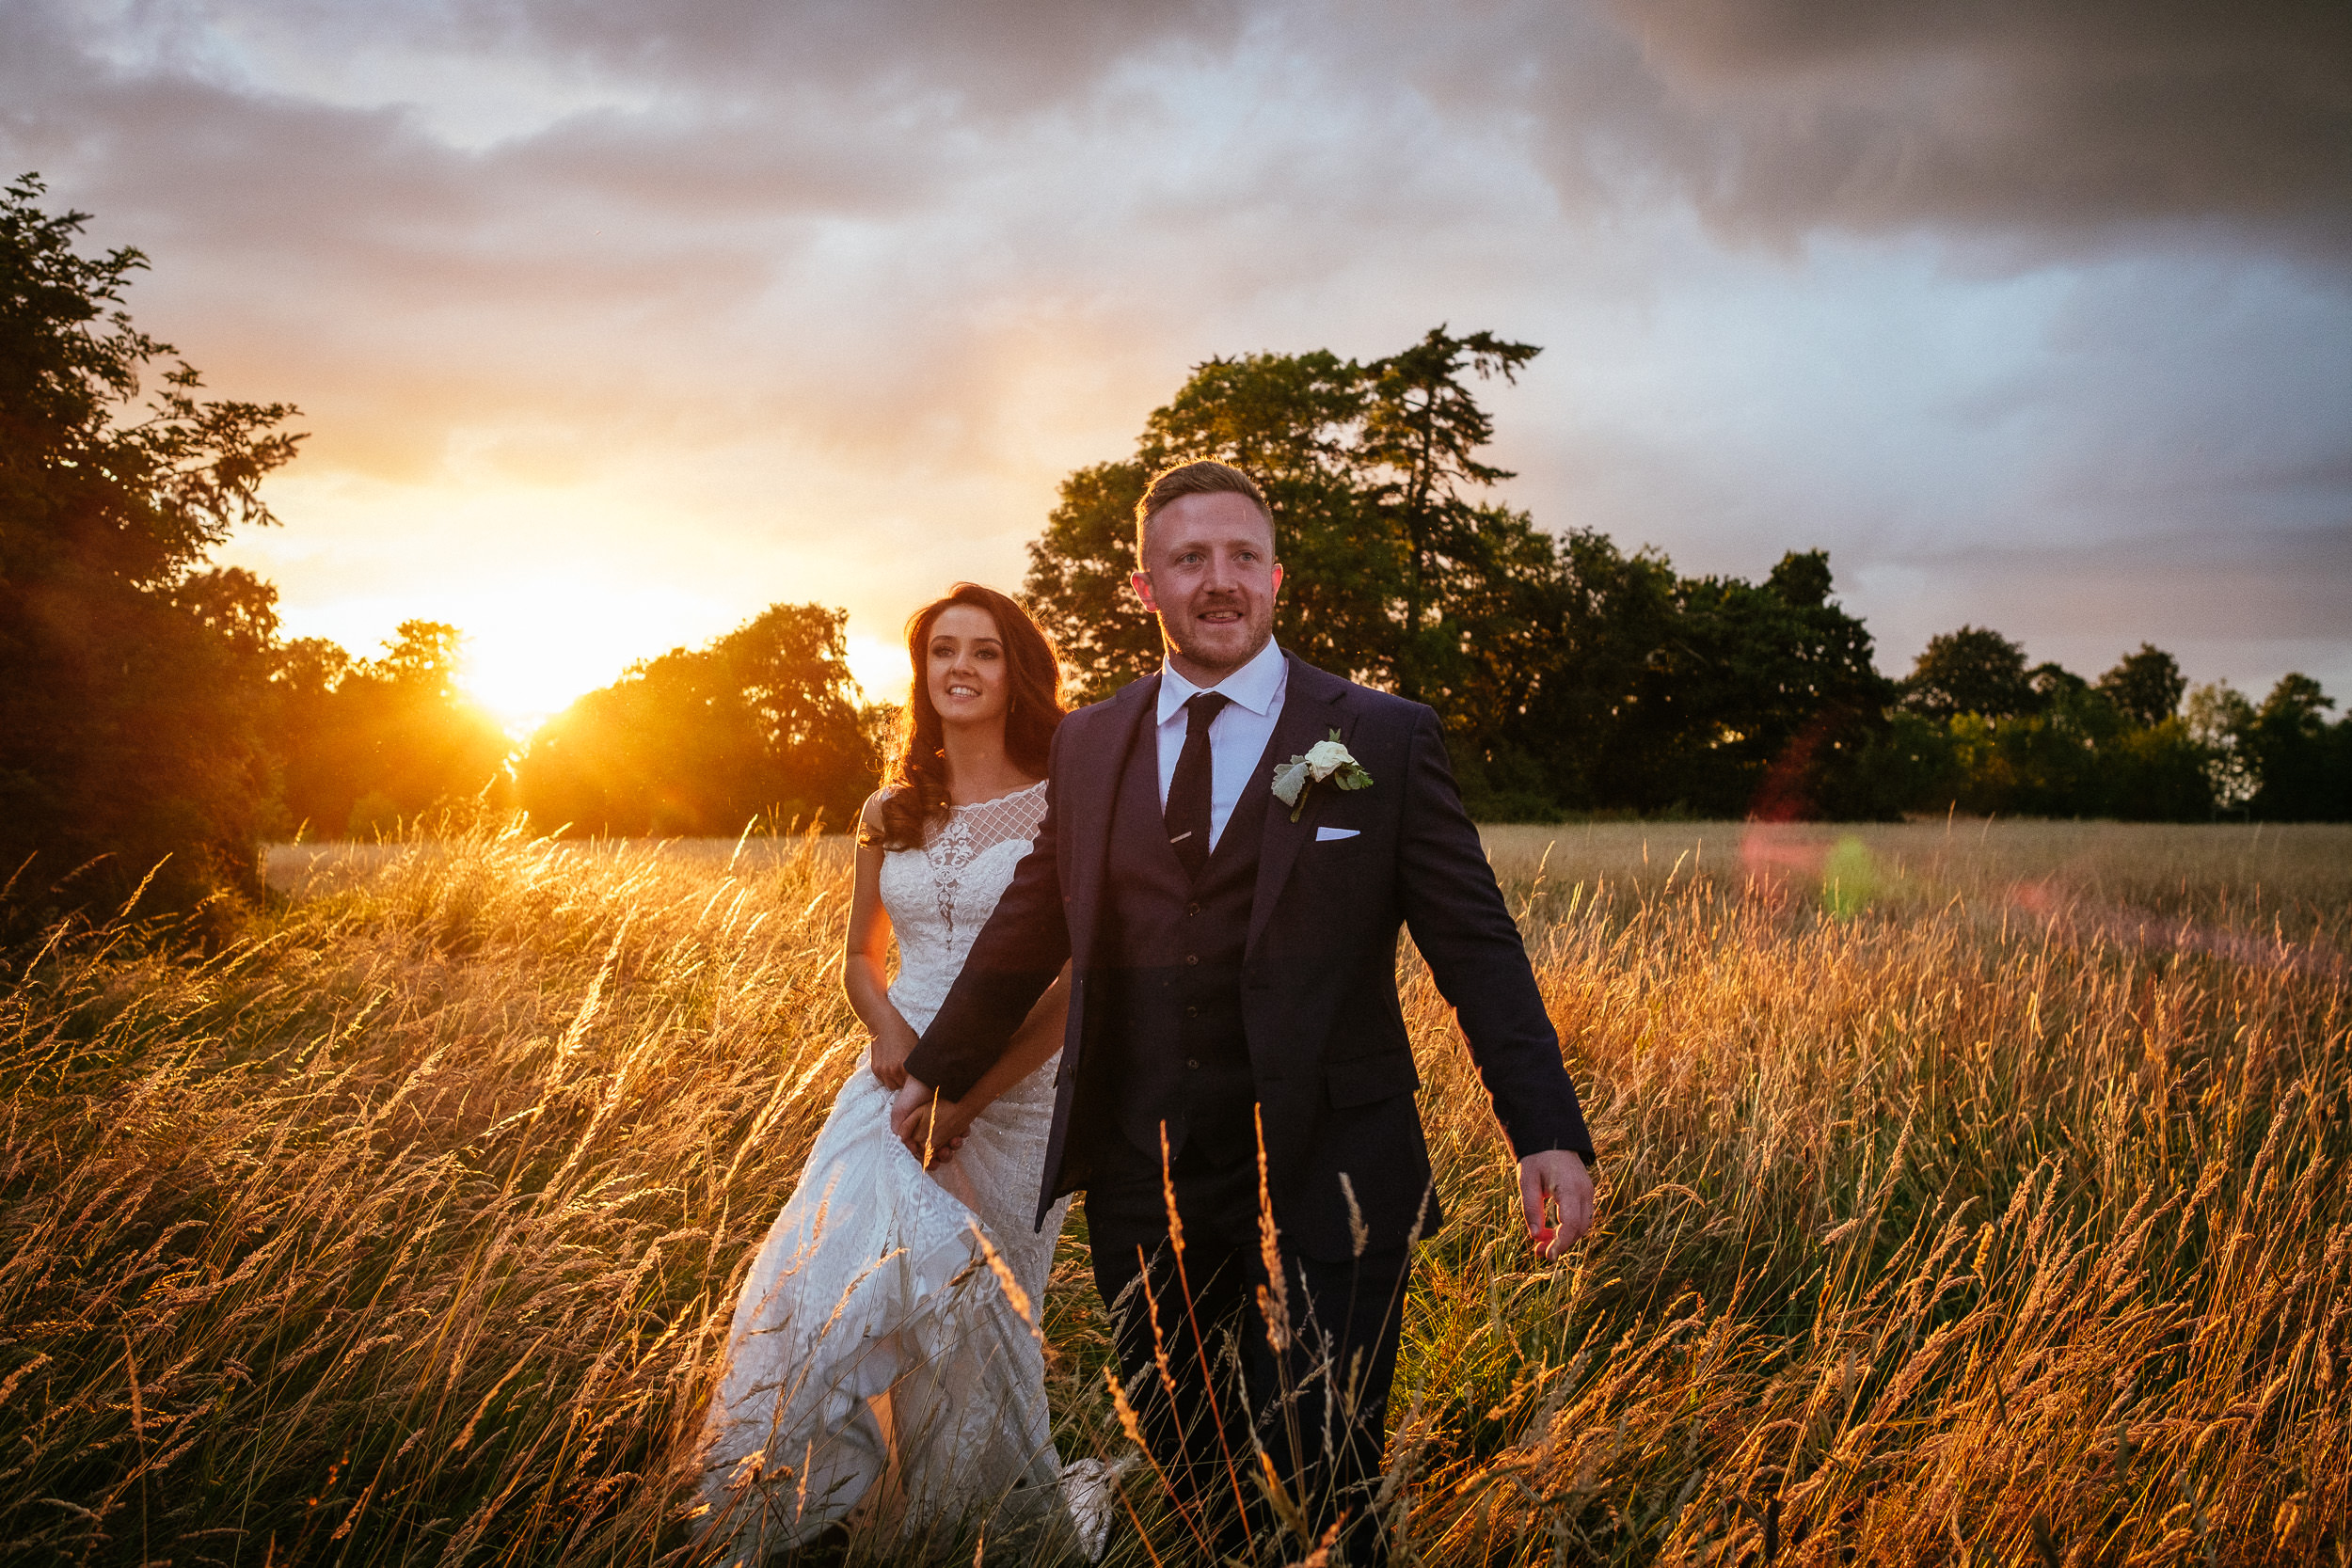 amazing sunset at killashee house hotel wedding